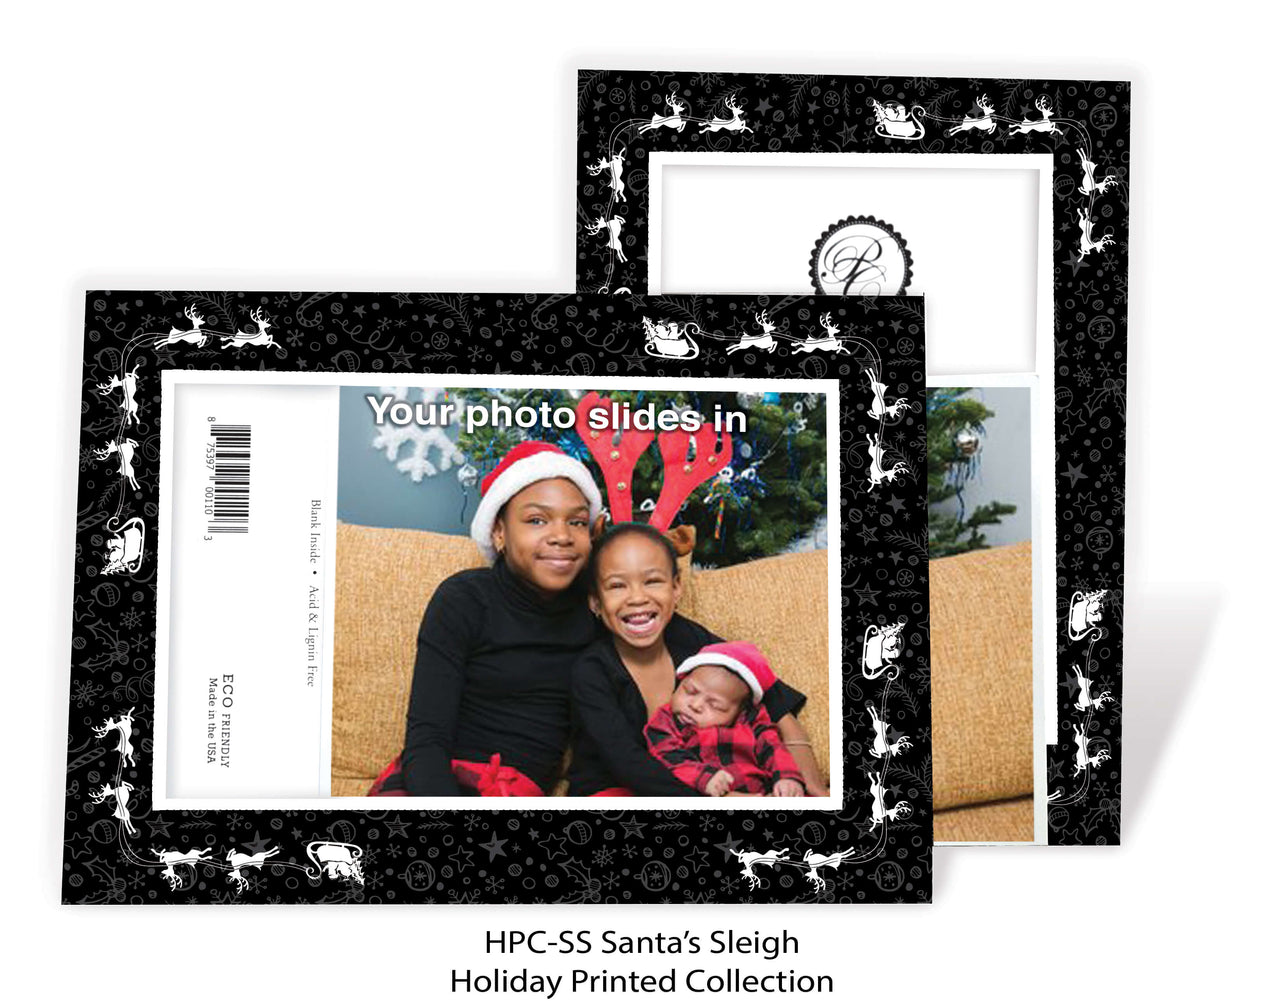 Santa Sleigh Holiday Printed Photo Greeting Cards